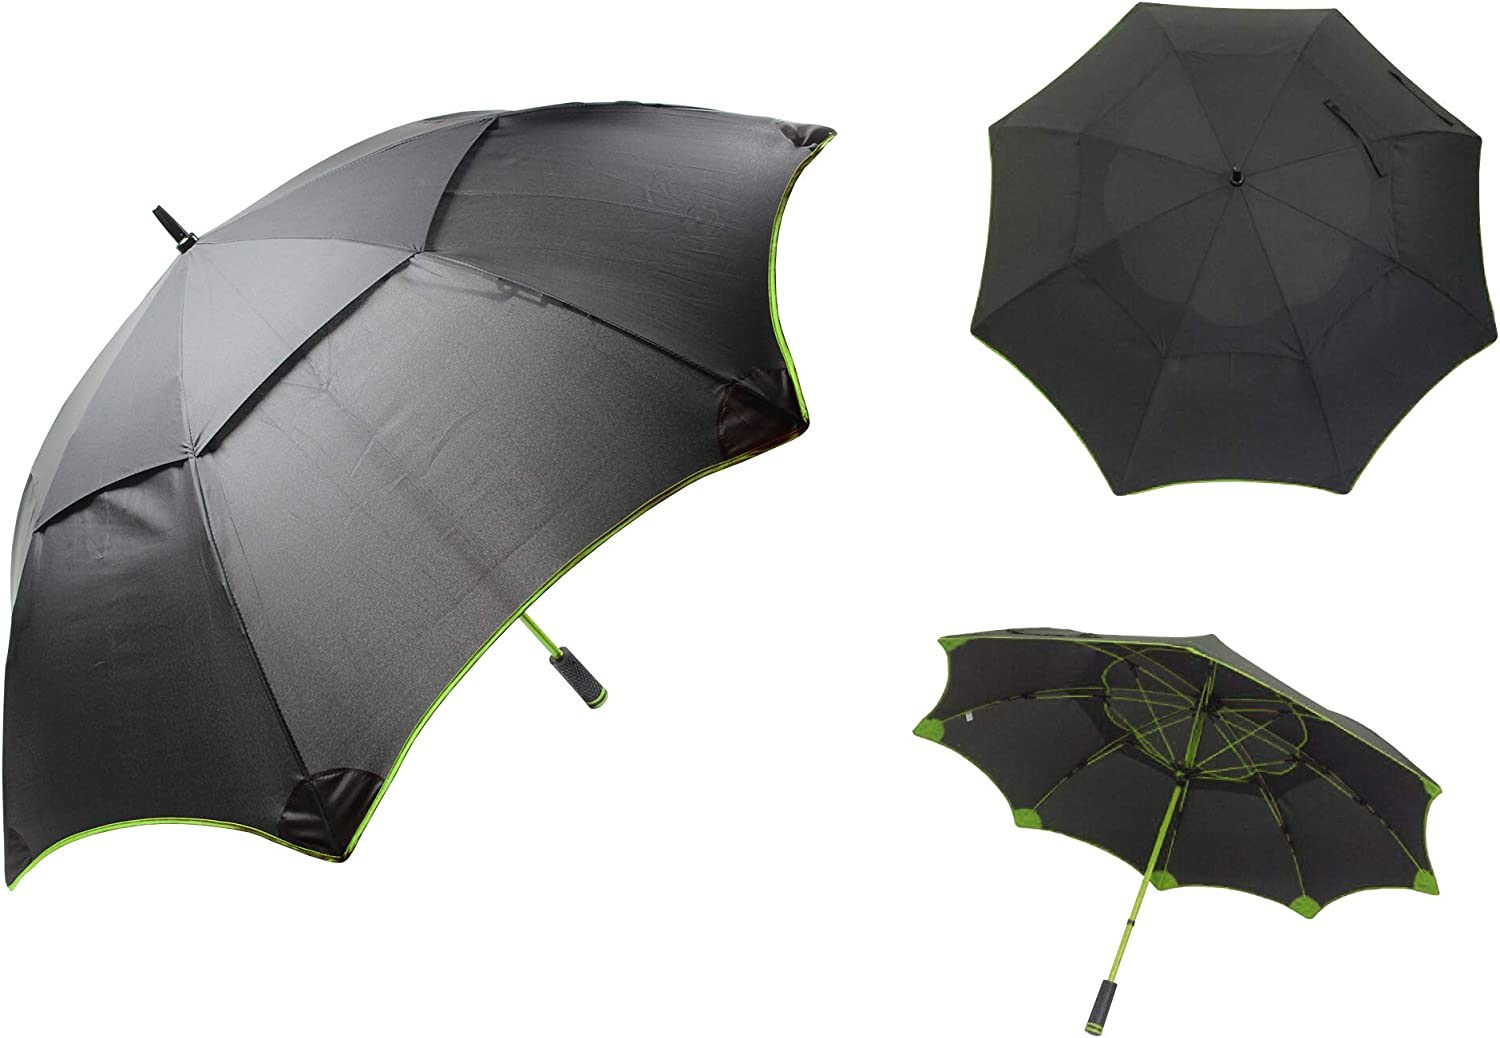 Storm Max 66% OFF Popular brand in the world Master Elite 62